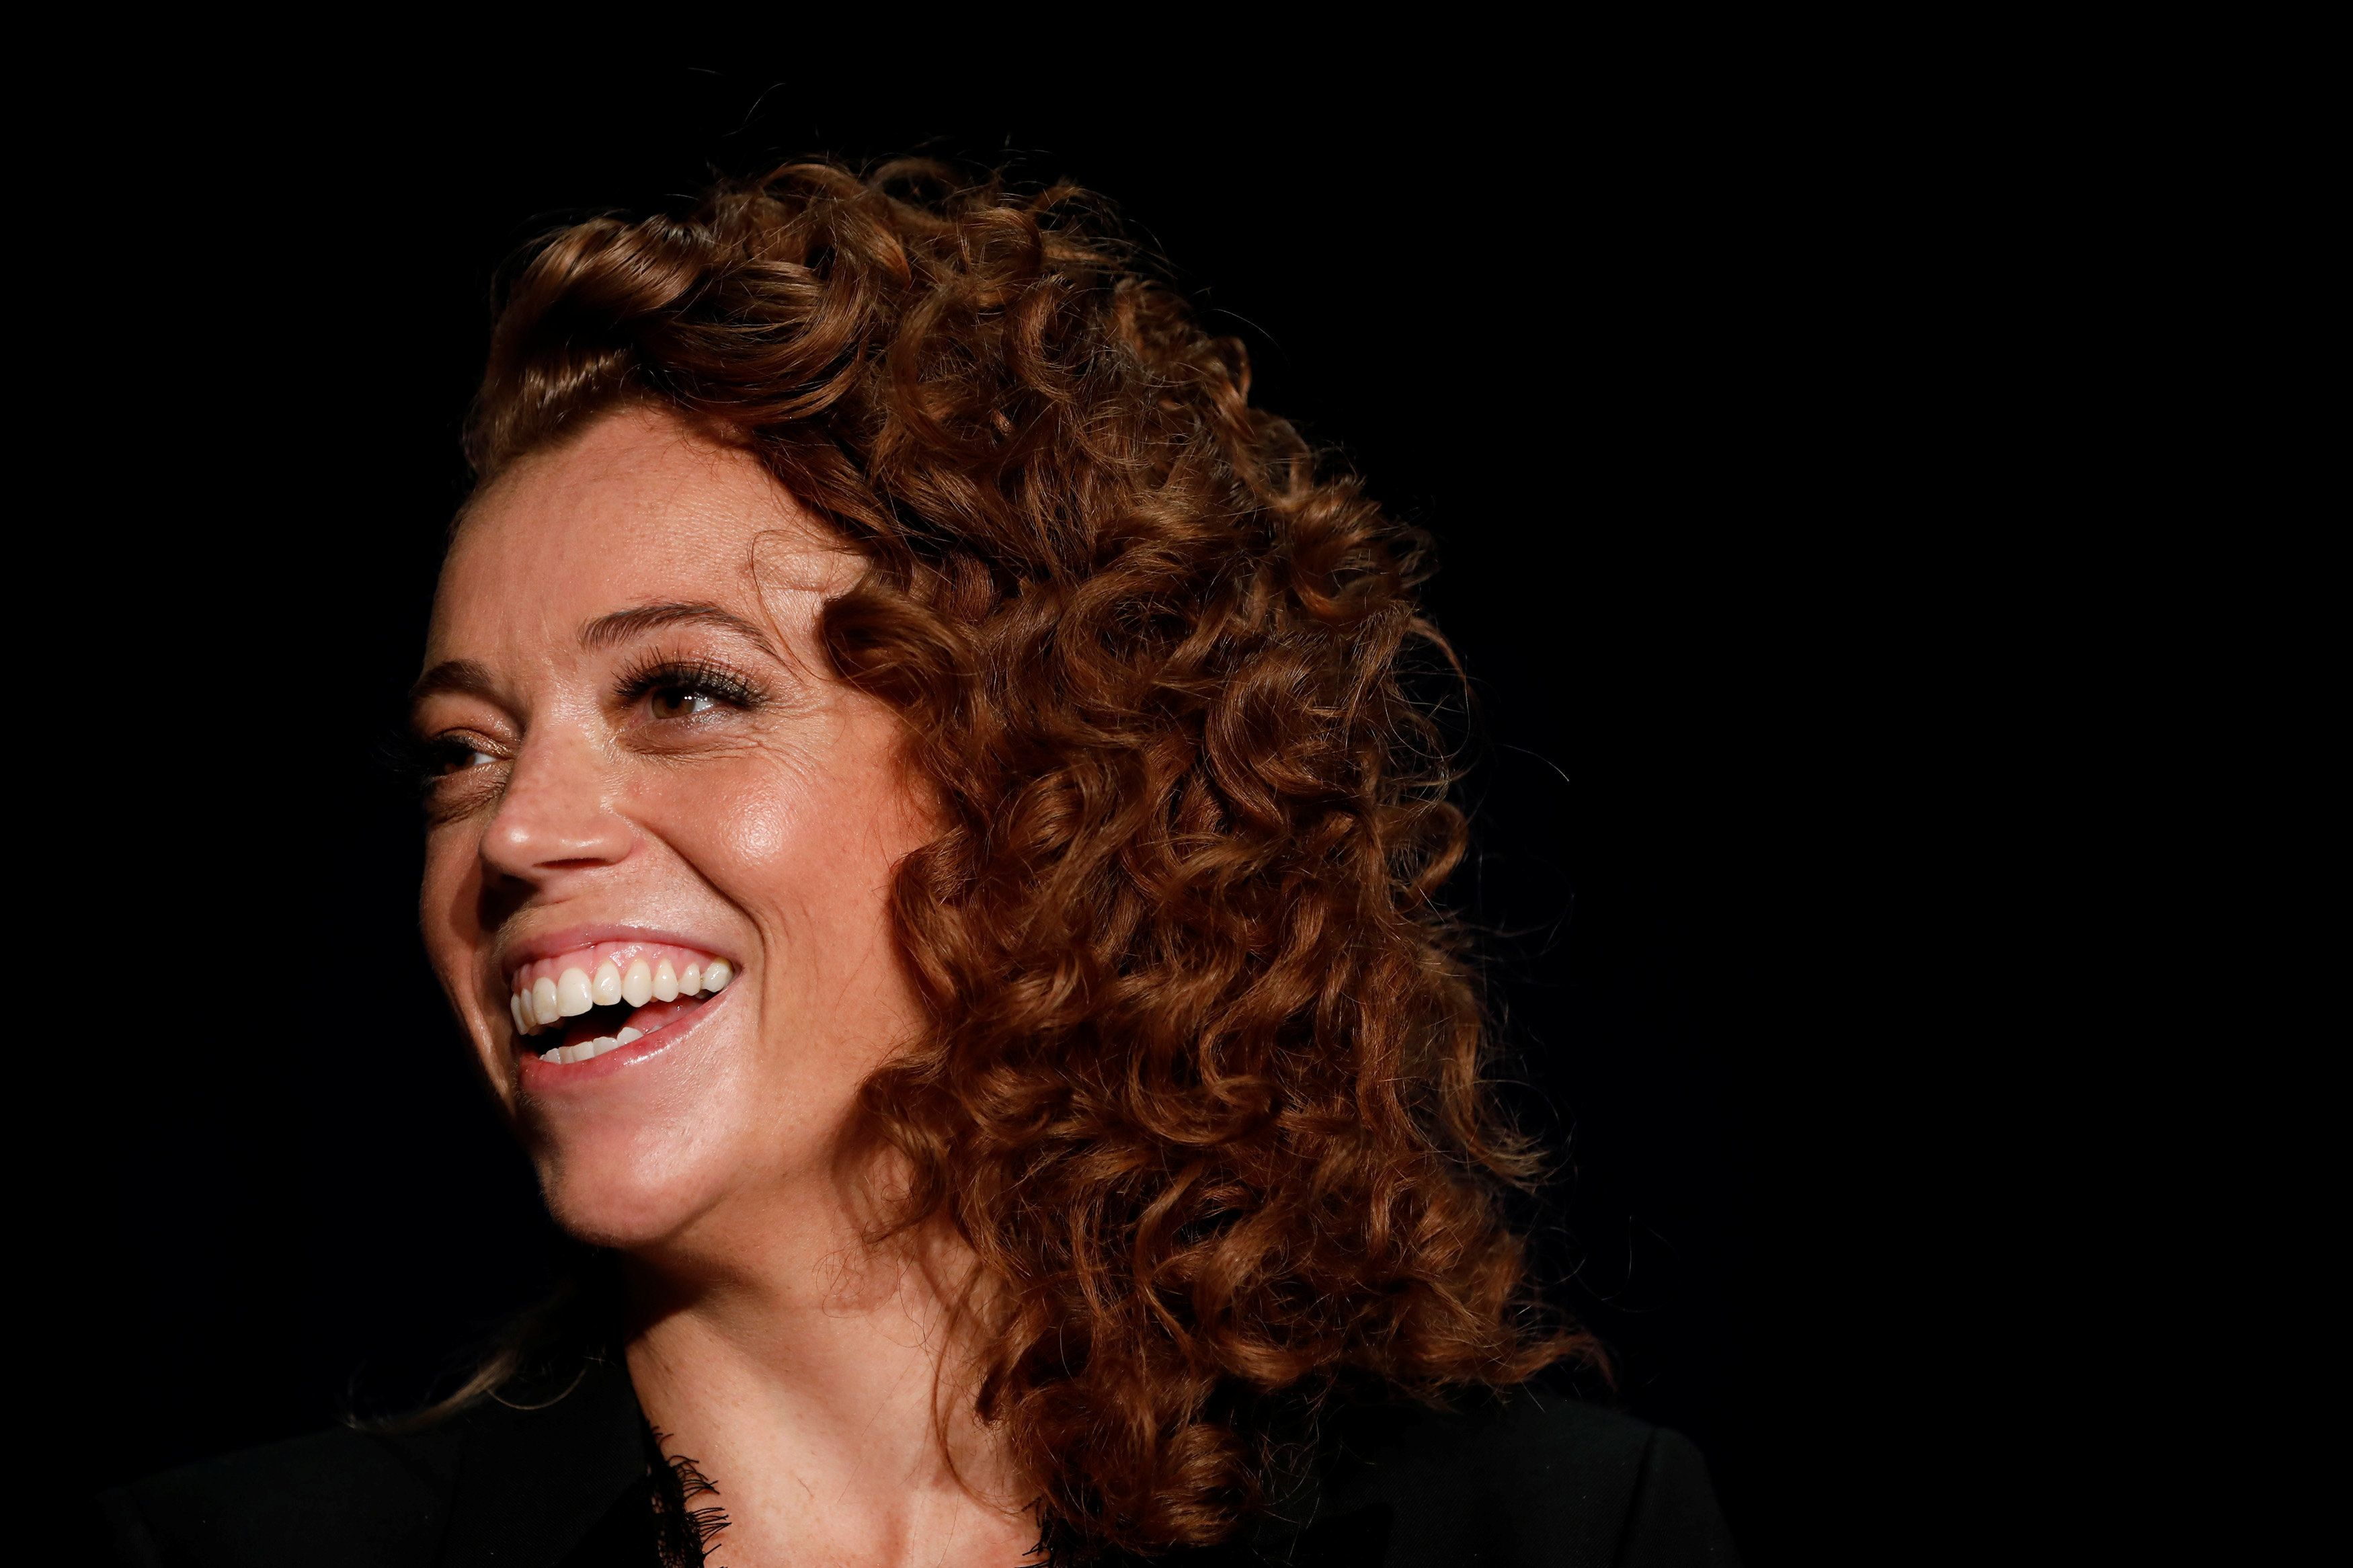 Comedian Michelle Wolf is seen at the White House Correspondents' Association dinner in Washington, U.S., April 28, 2018. REUTERS/Aaron P. Bernstein